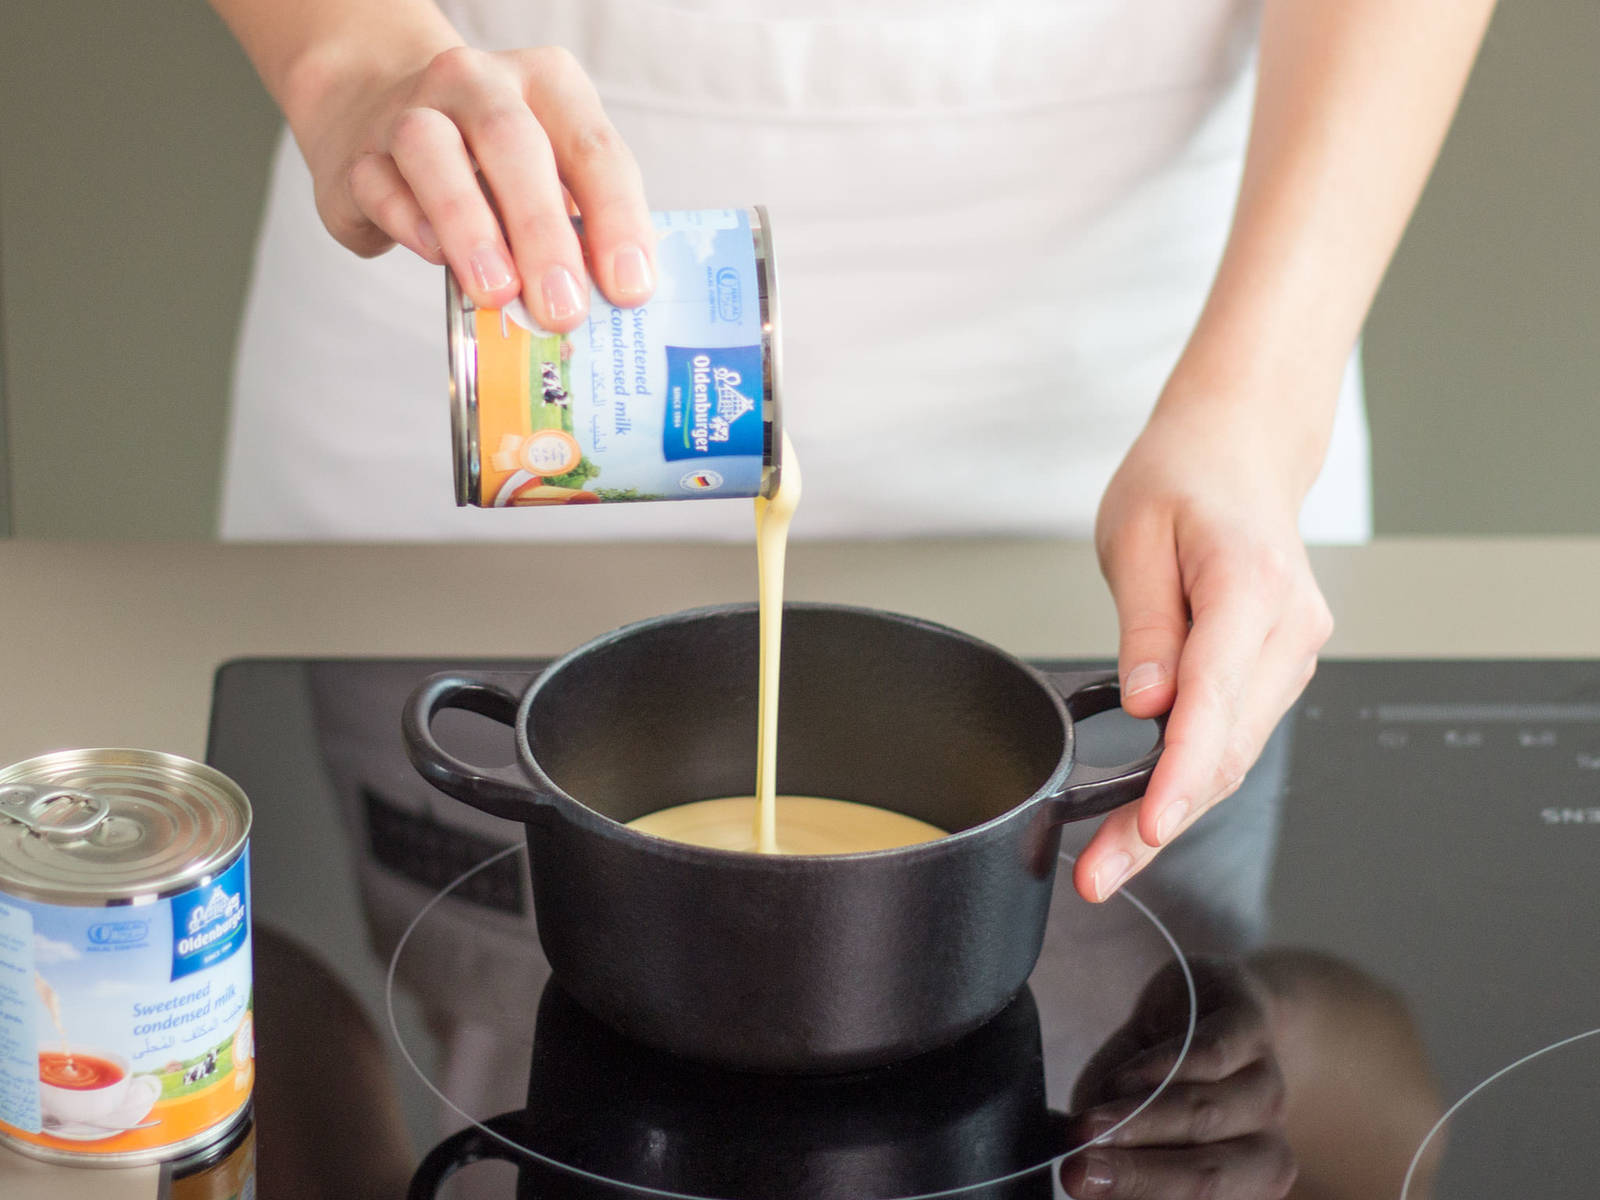 In a small saucepan, heat up condensed milk over medium heat and cook for approx. 3 – 5 min.